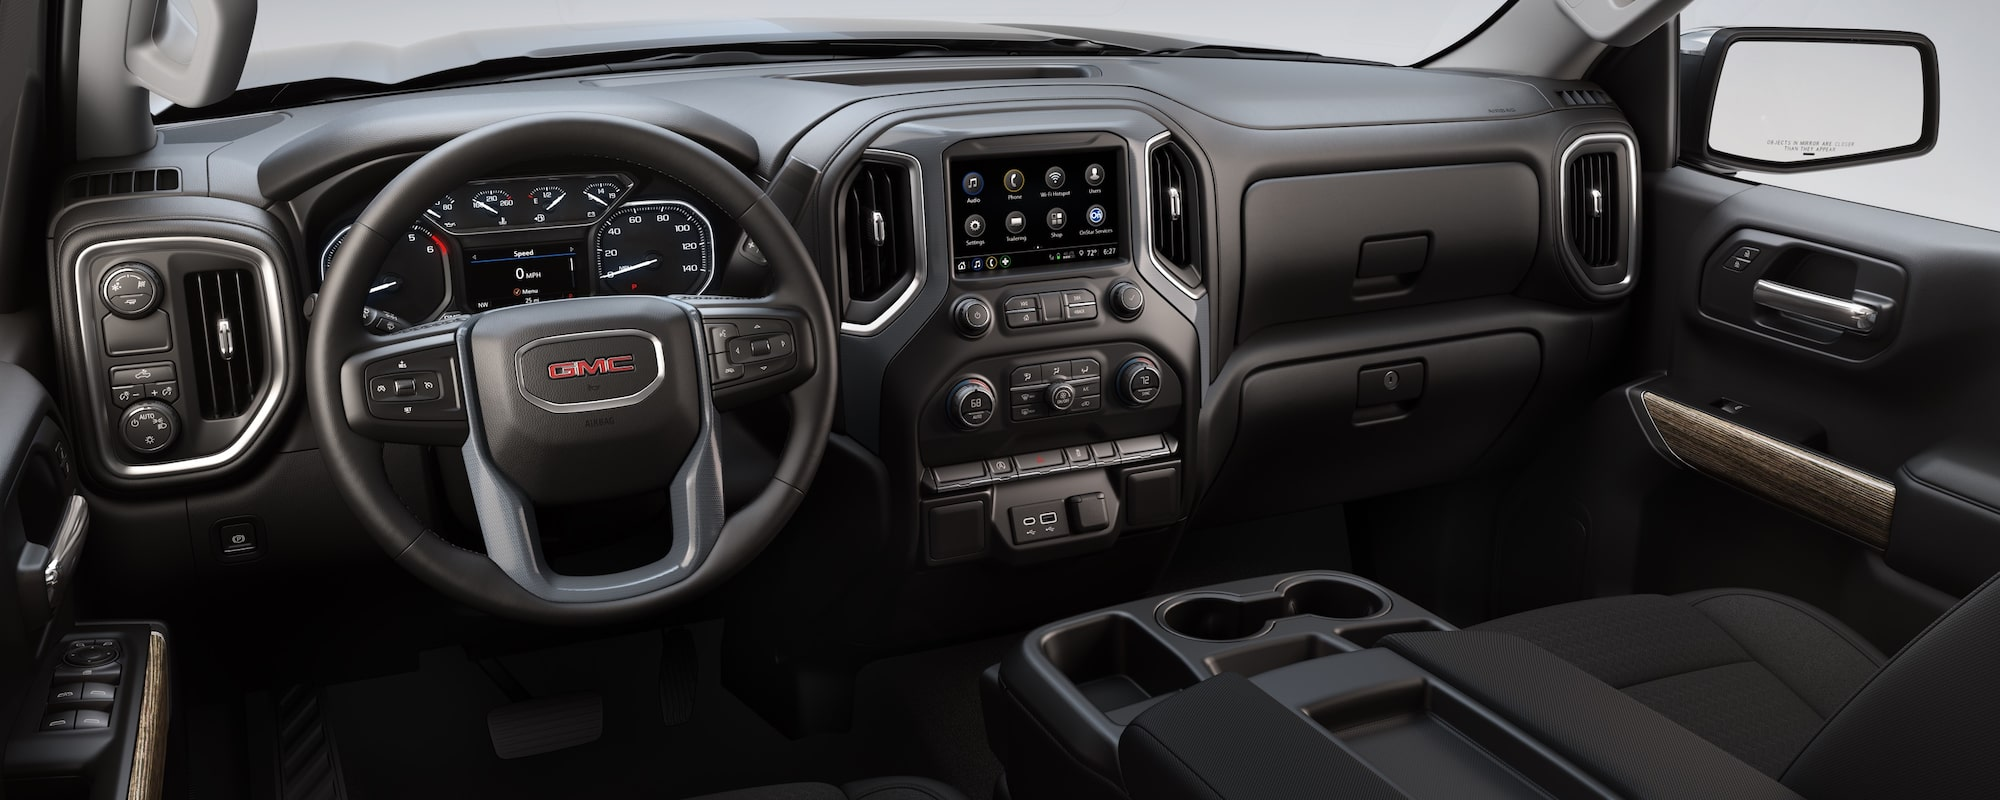 Smart Outlet The Next Generation 2020 Gmc Sierra 1500 Pickup Truck | Gm